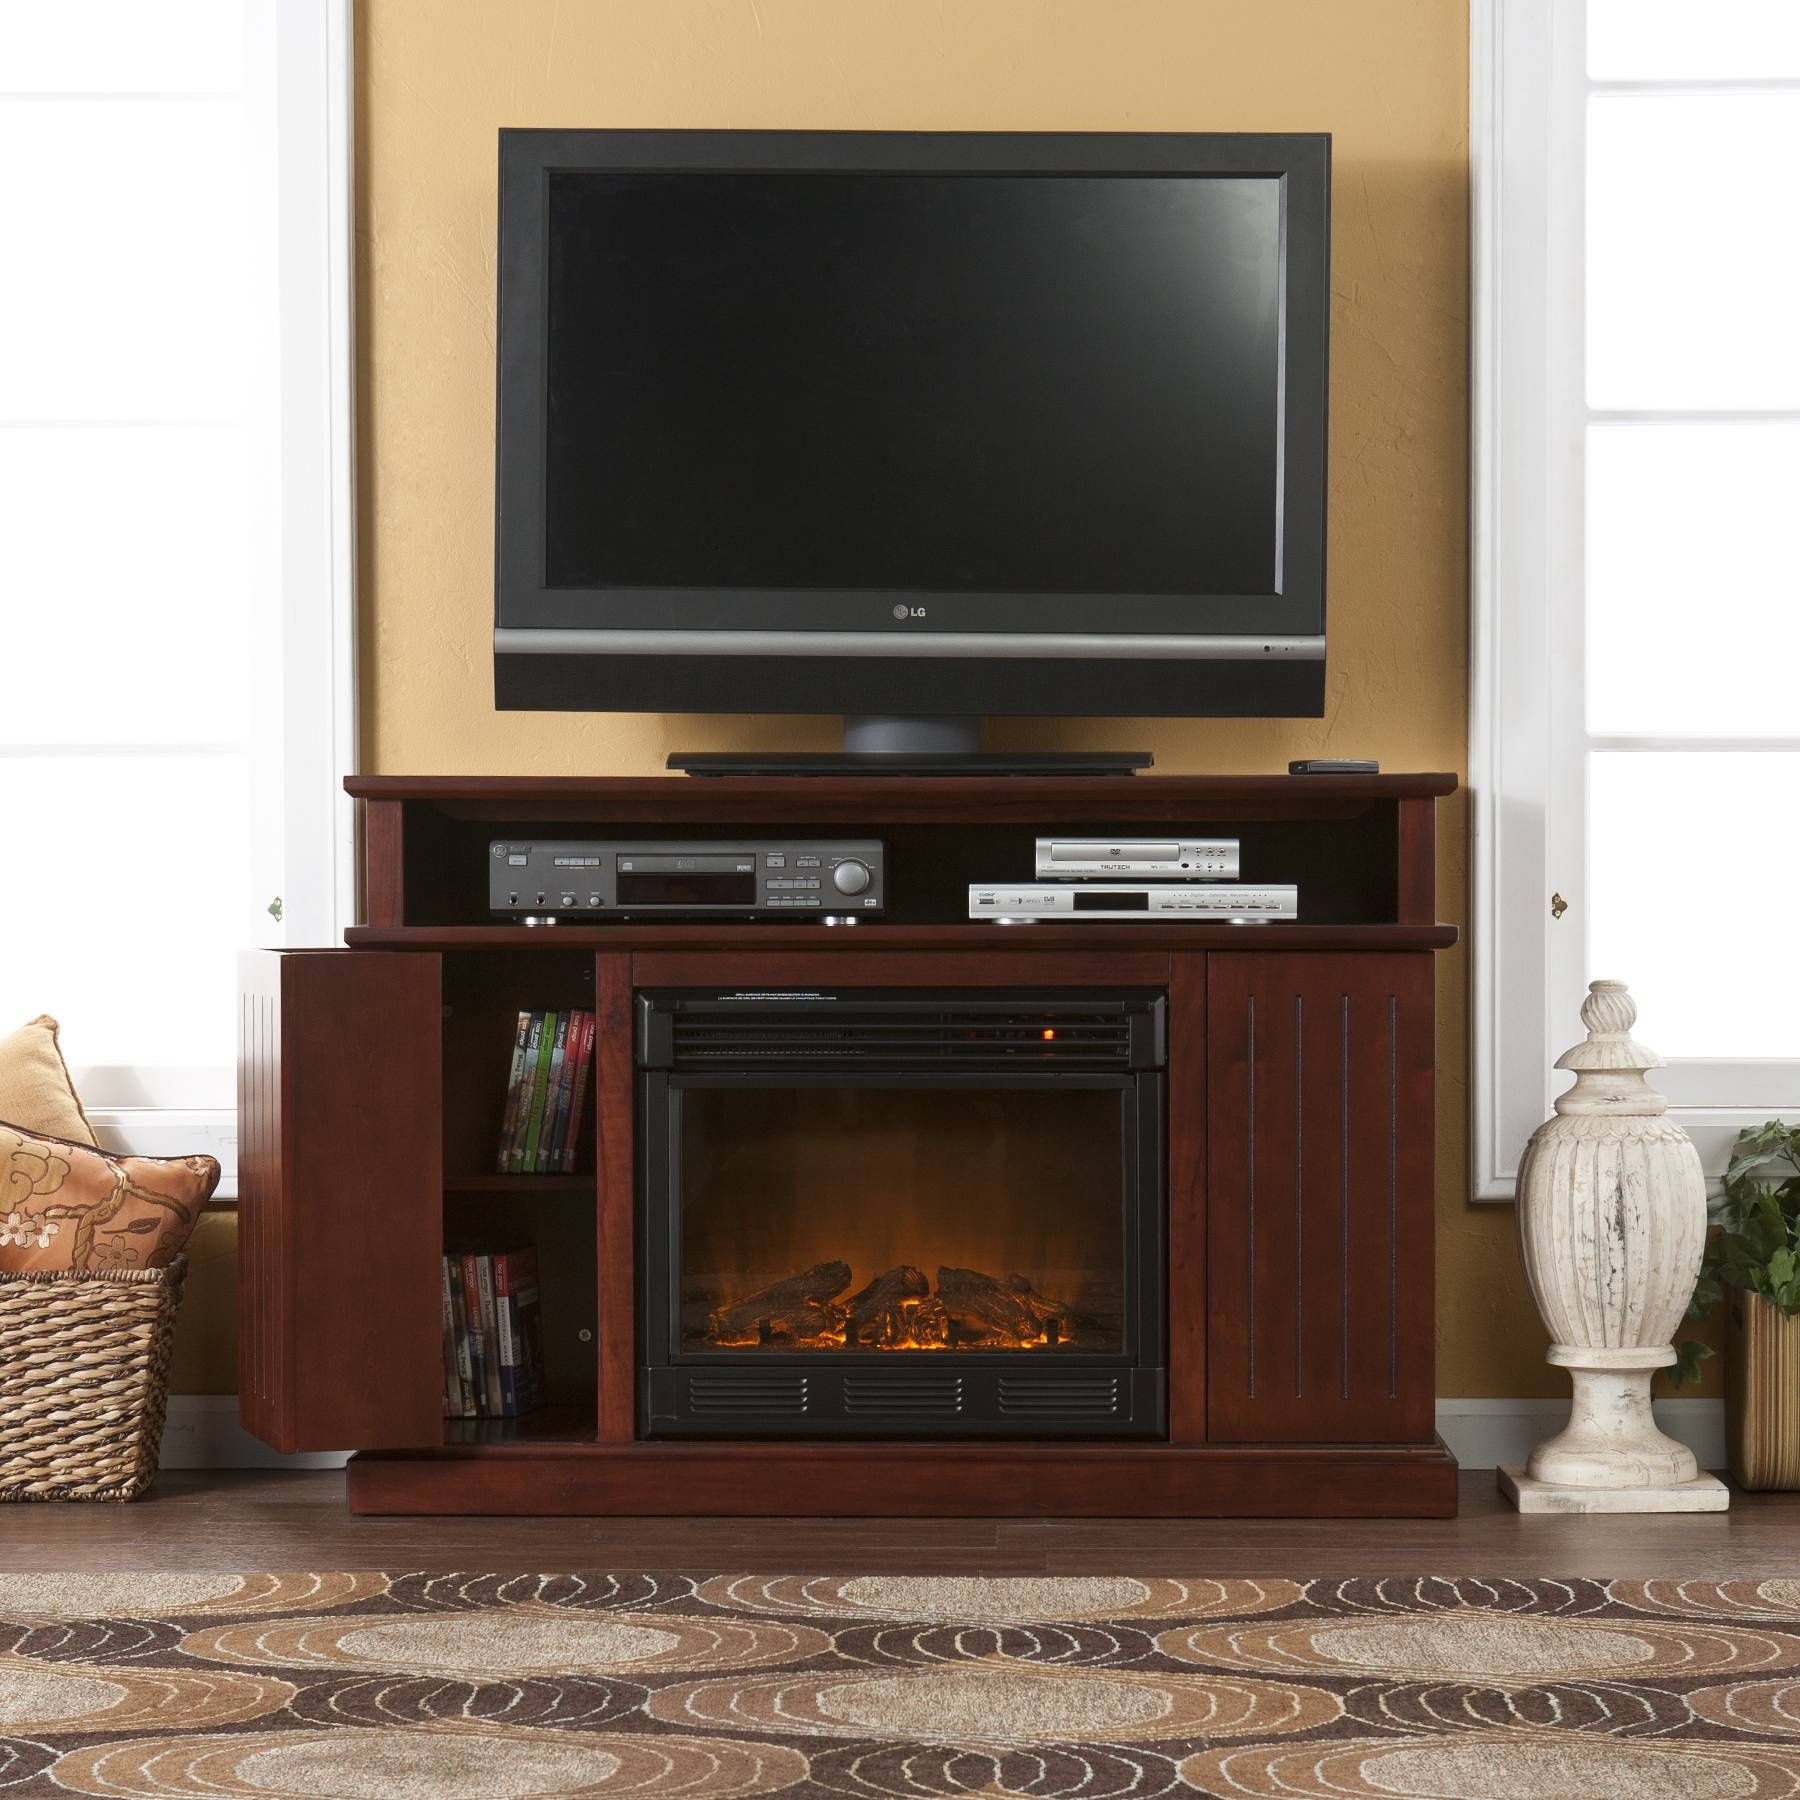 Cherry Wood Tv Stand With Electric Fireplace And Cd Storage within Cherry Wood Tv Stands (Image 5 of 15)